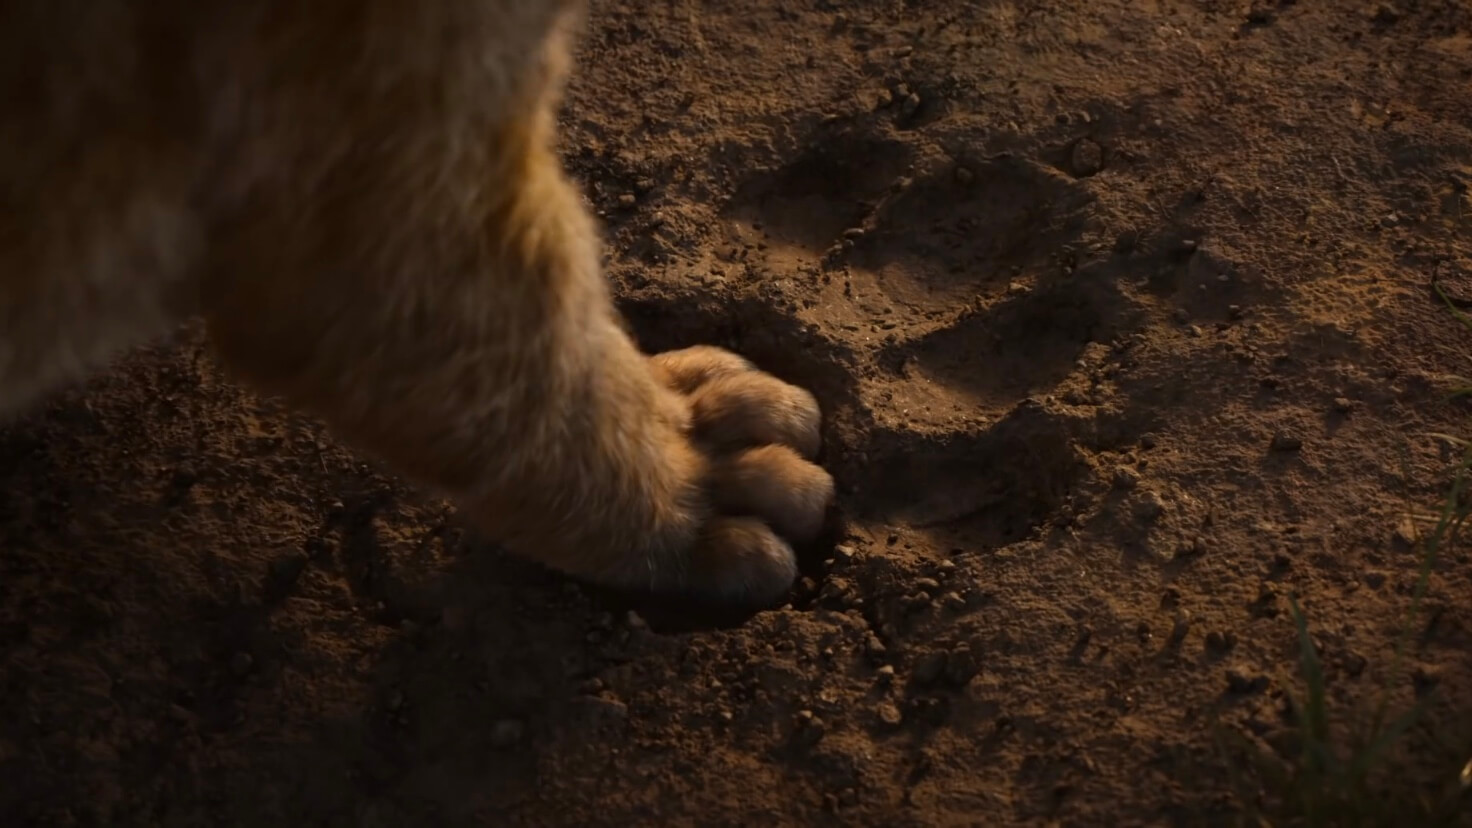 Simbas's foot in Mufasa's footprint.